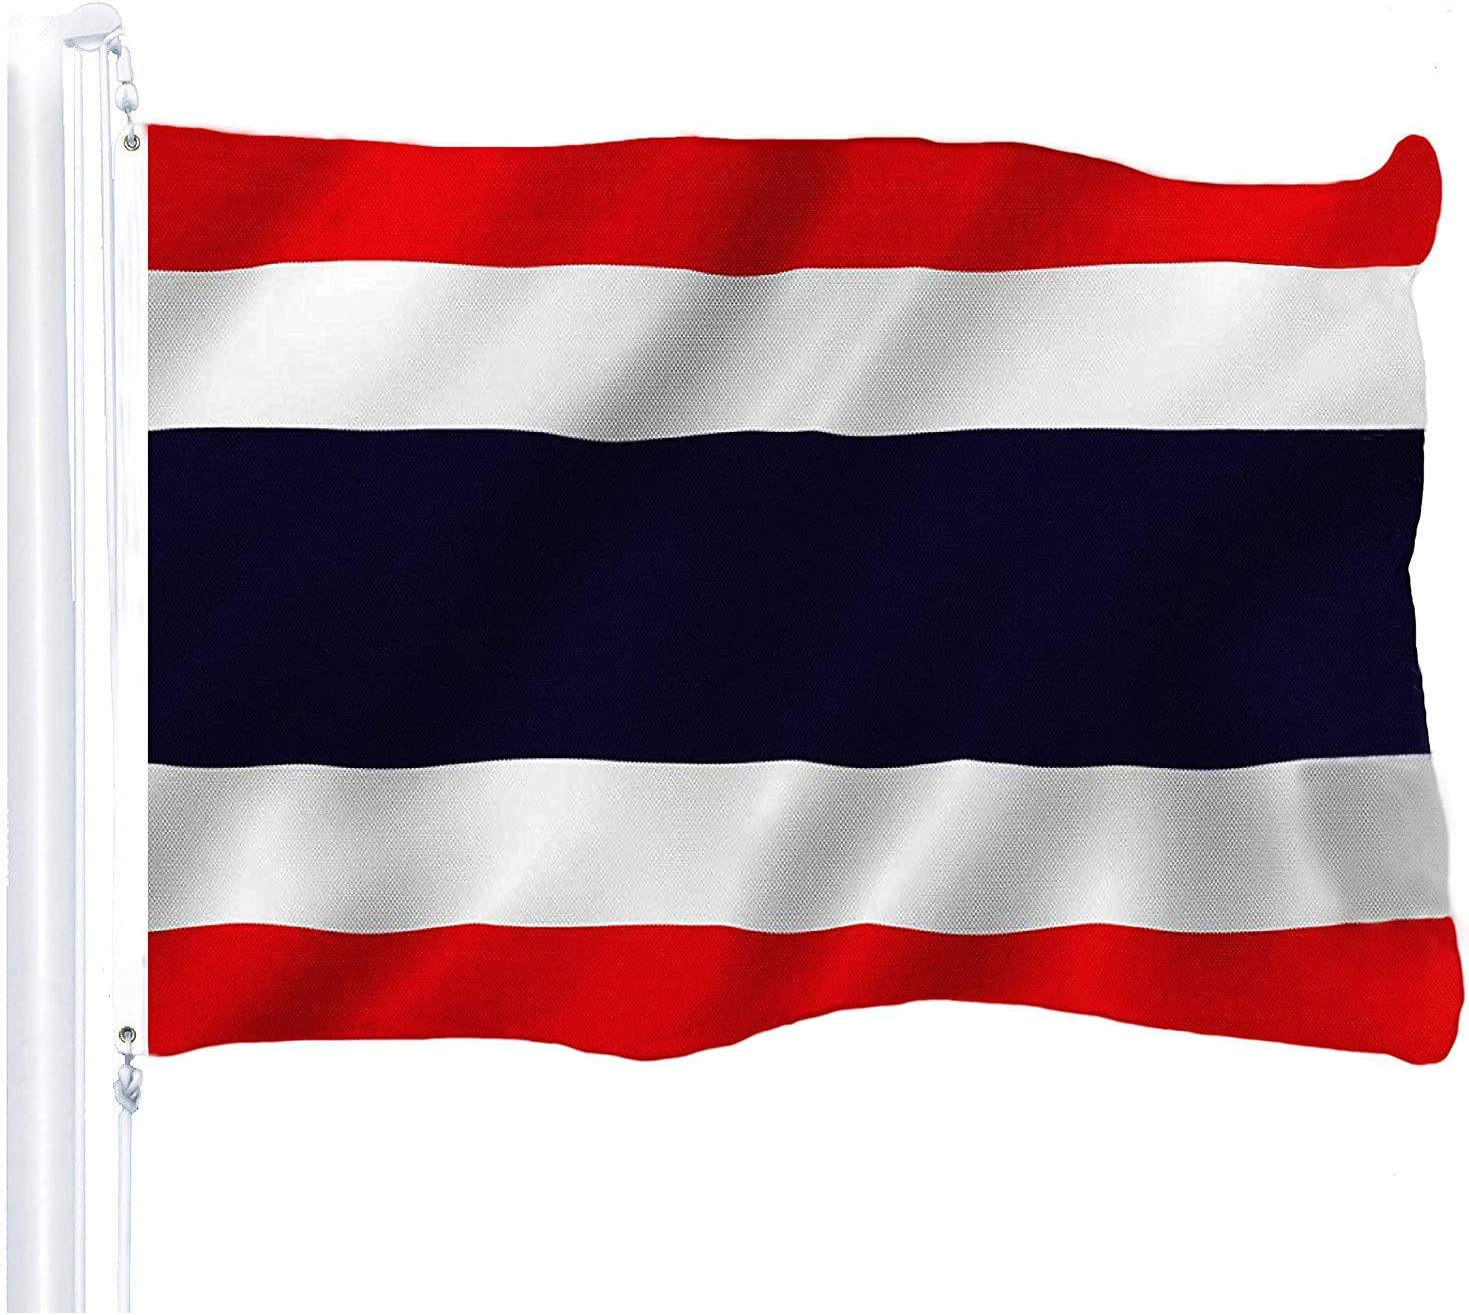 G128 – Thailand (Thai) Flag | 3x5 feet | Printed 150D – Indoor/Outdoor, Vibrant Colors, Brass Grommets, Quality Polyester, US USA Flag, Much Thicker More Durable Than 100D 75D Polyester